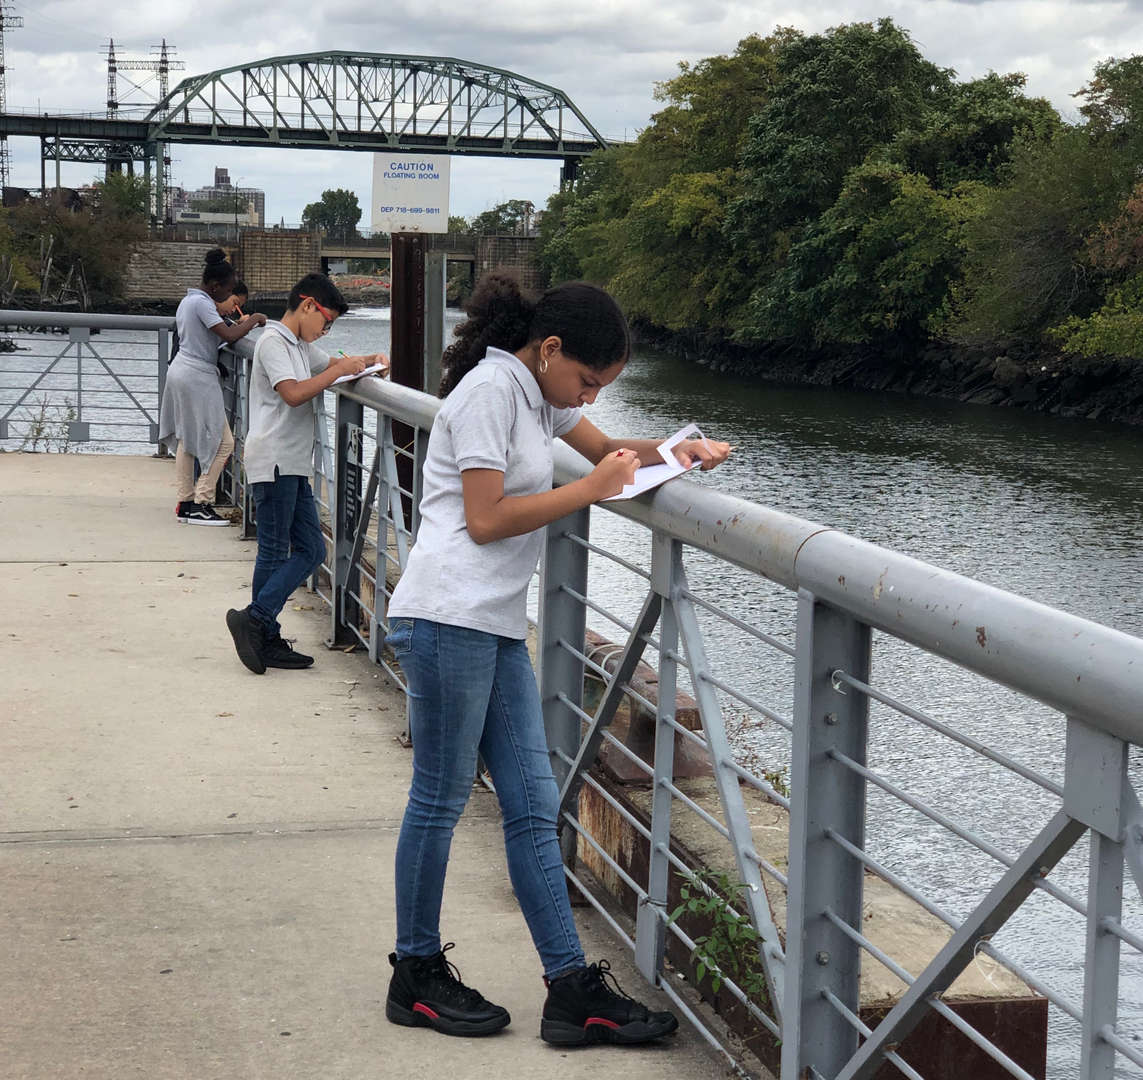 Three students lean on a railing overlooking the Bronx River while the draw what they see.